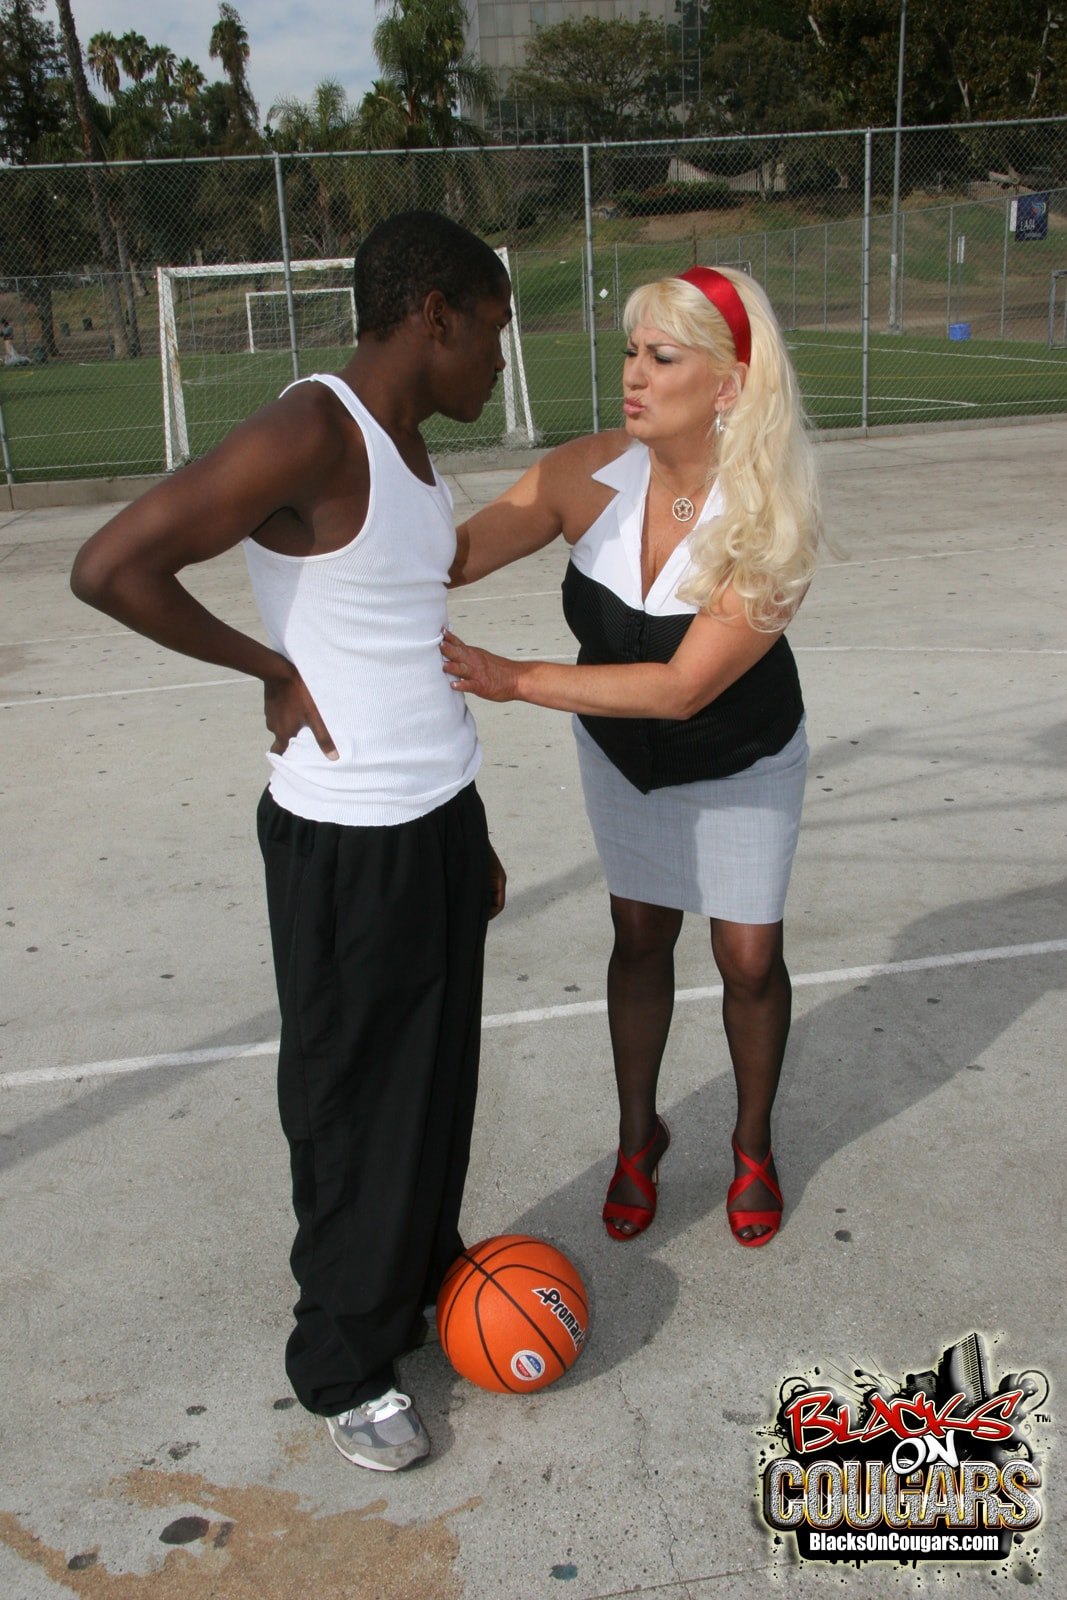 Dogfart '- Blacks On Cougars' starring Dana Hayes (Photo 4)